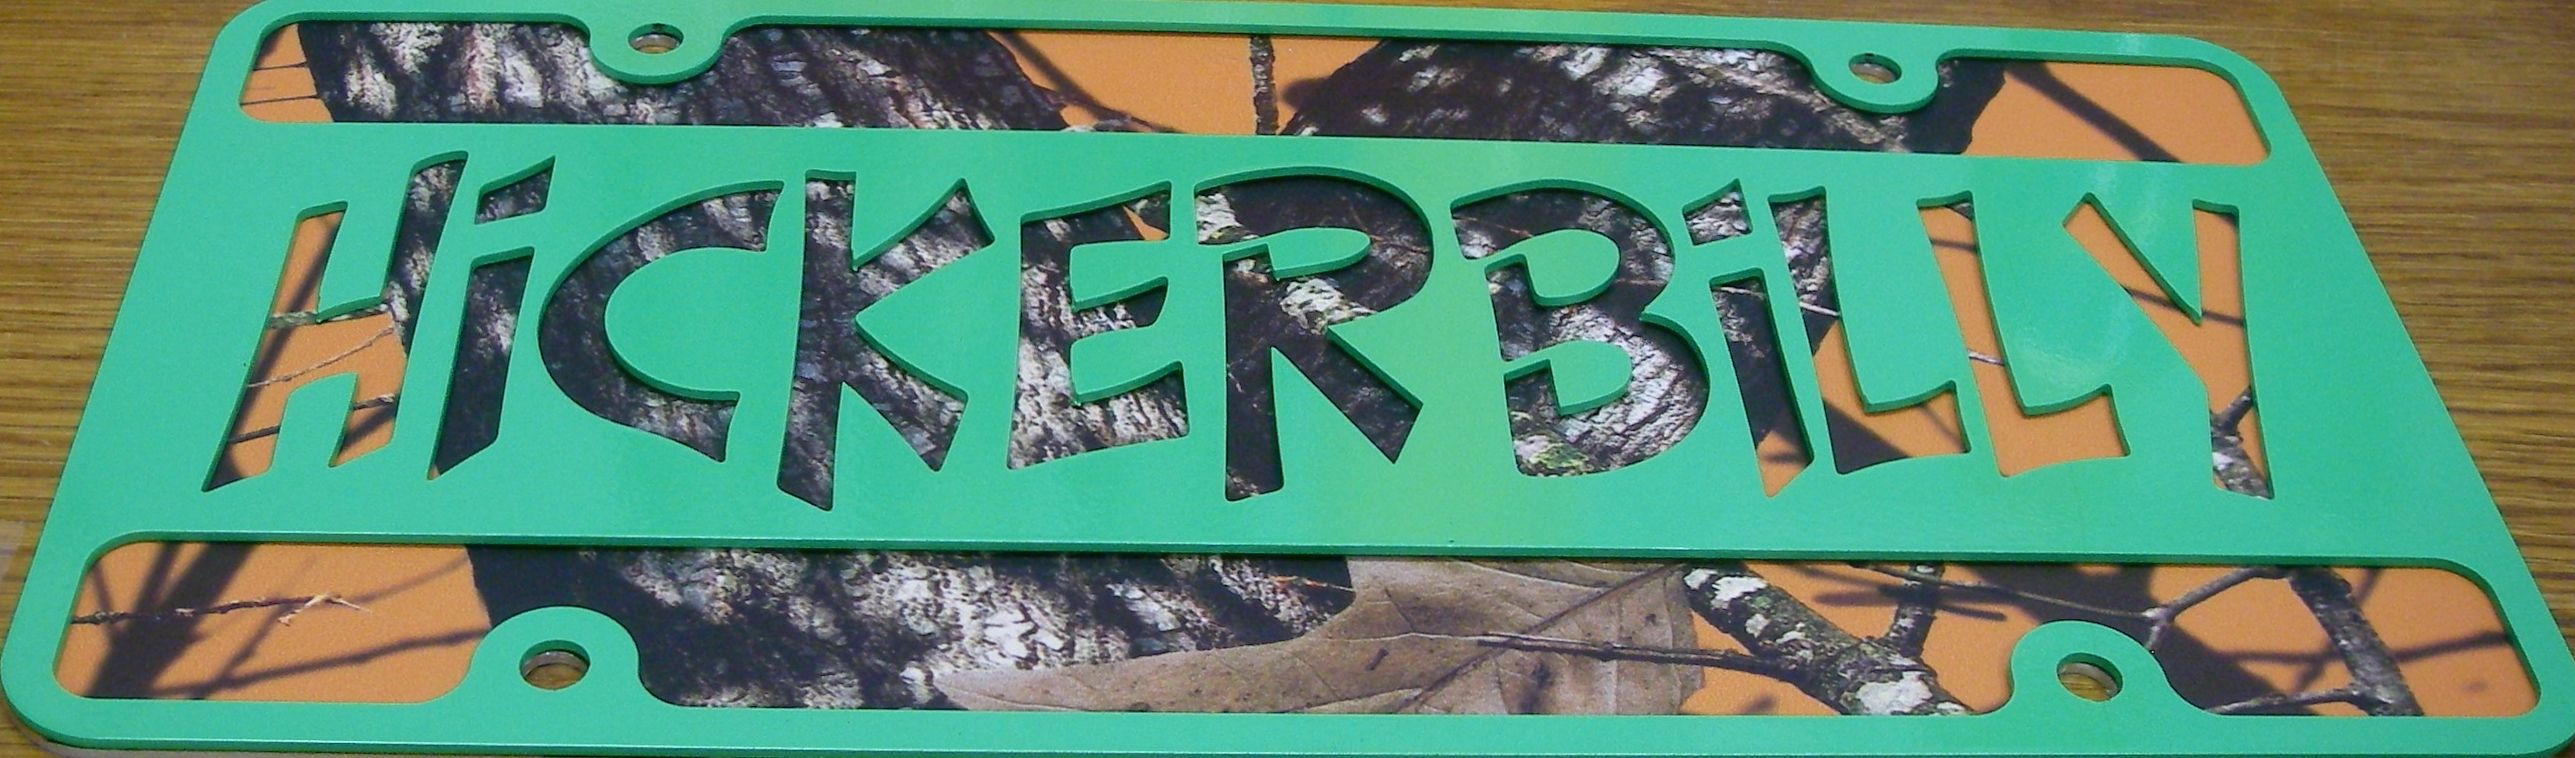 Mossy Oak Blaze Orange with Green Powder Coated Front Plate.  Buy yours today at www.hickerbilly.com